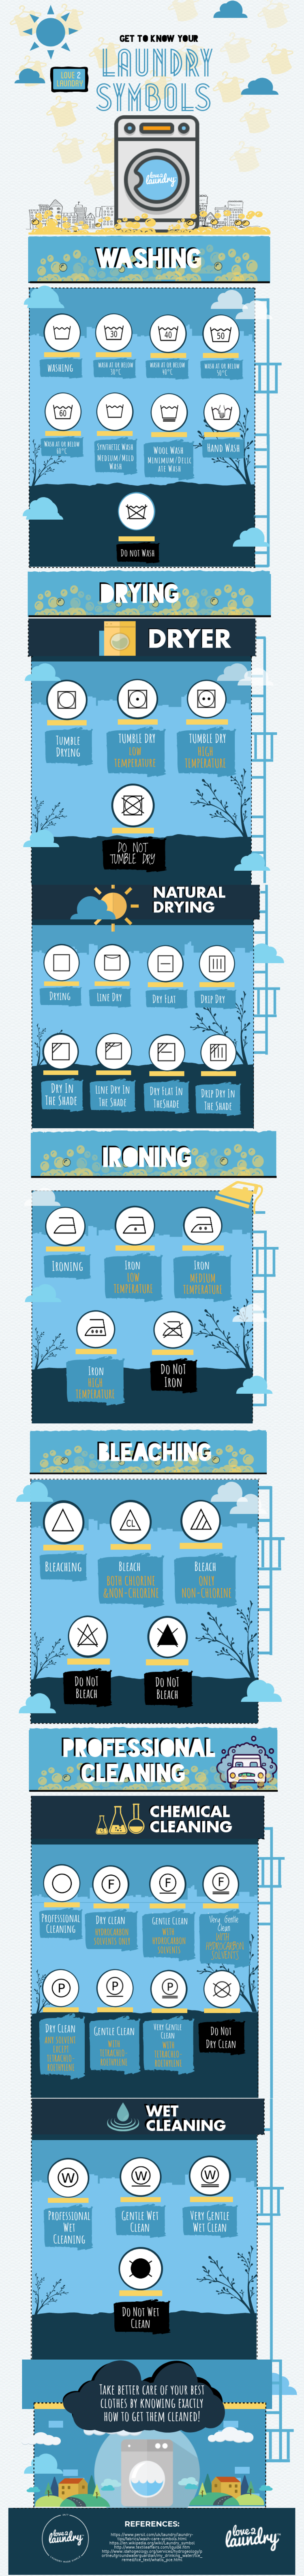 laundry-symbols-infographic-2.png